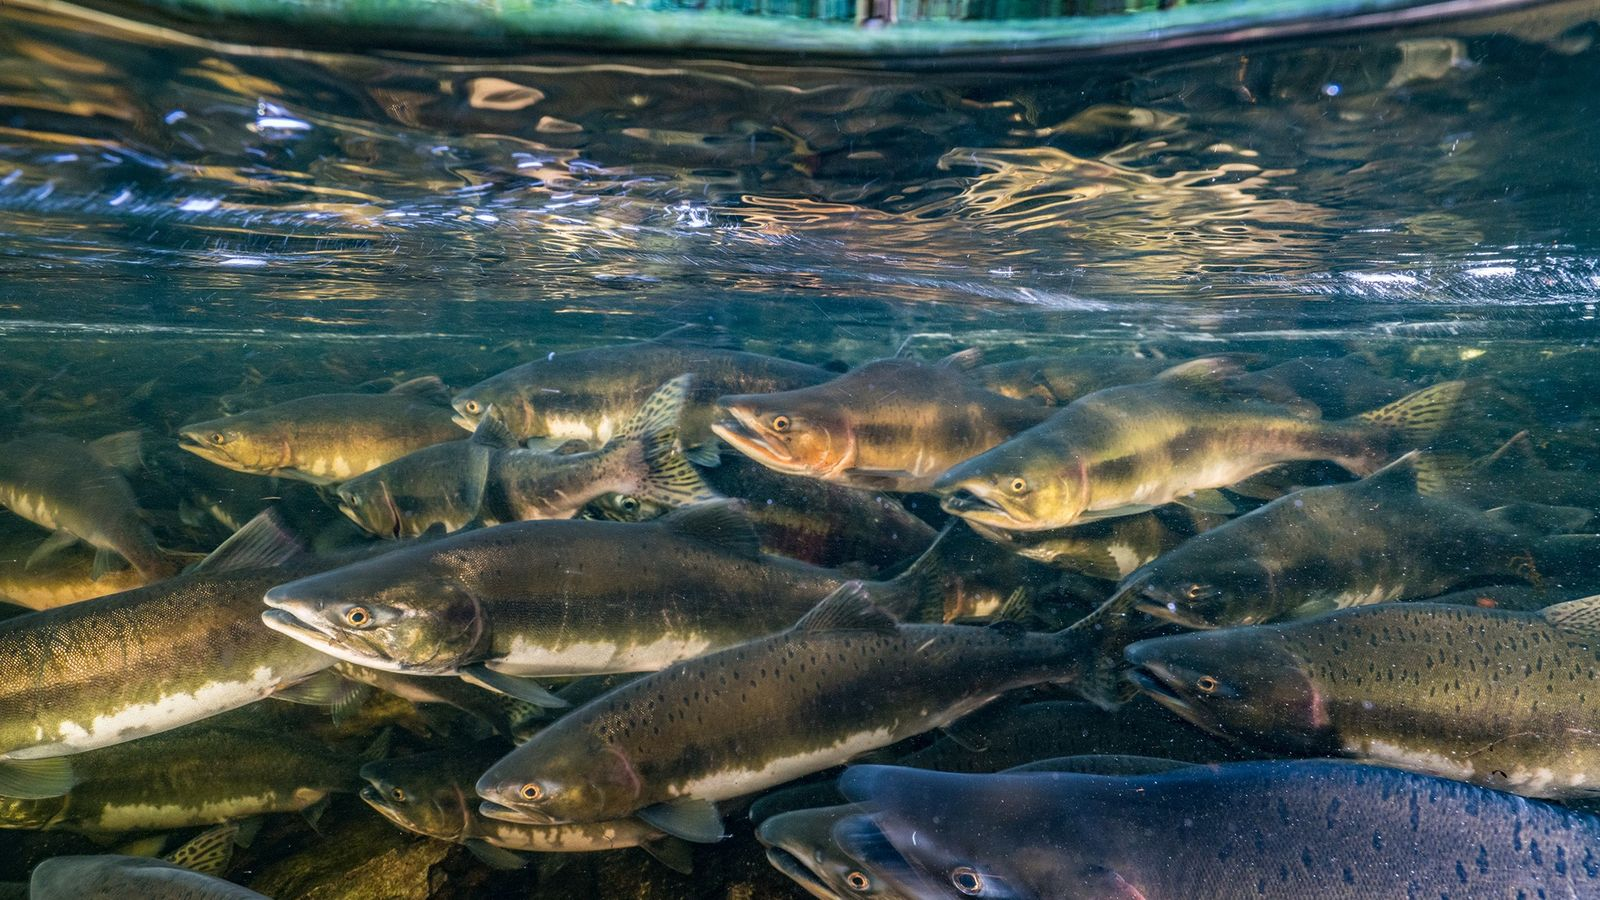 Like many migratory fish, chinook salmon are threatened by overfishing, habitat degradation, and dams that block ...